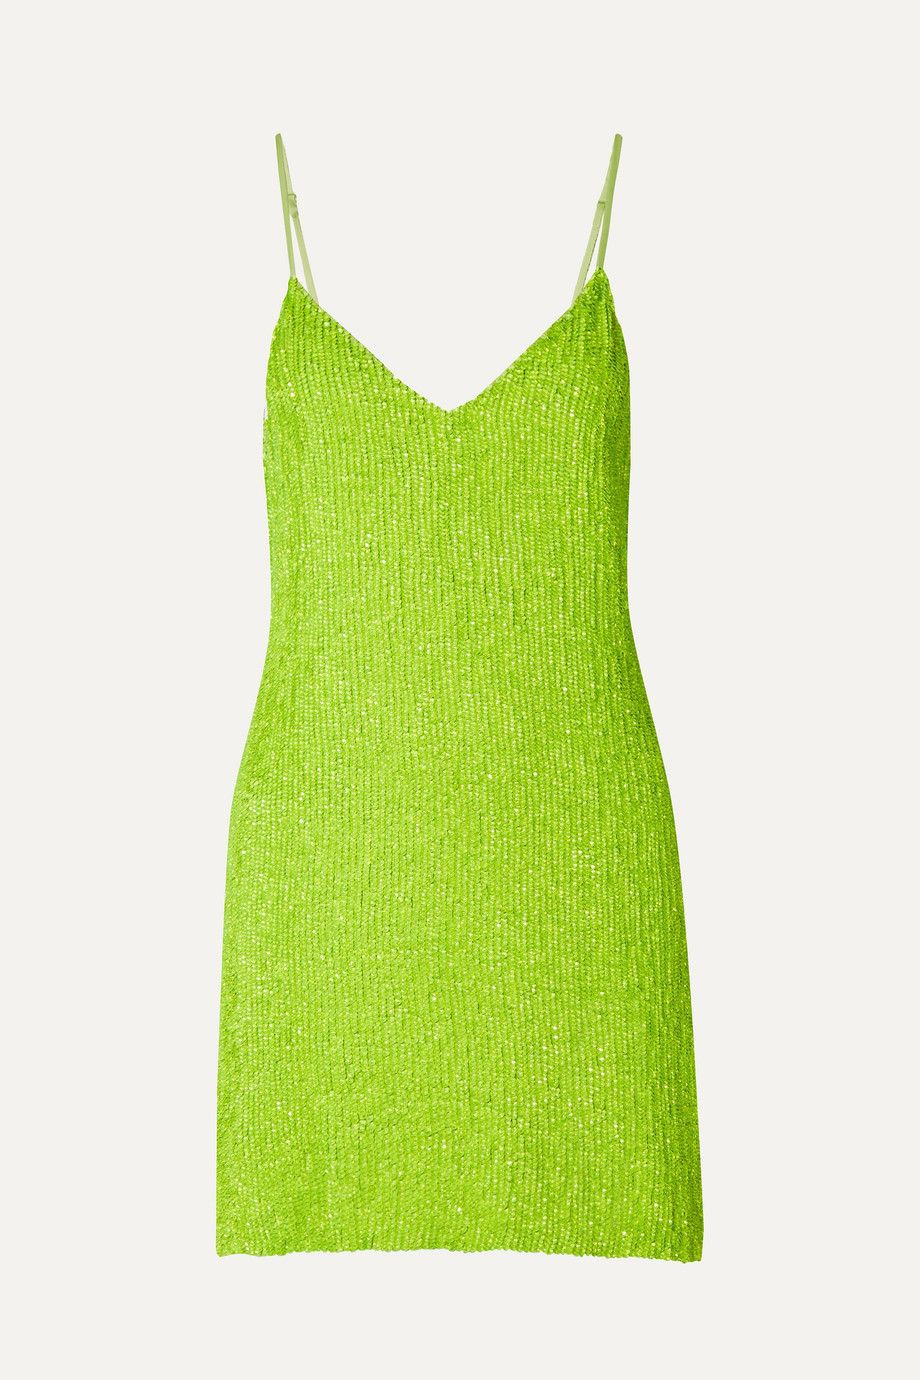 retrofete-claire-neon-sequined-chiffon-mini-dress